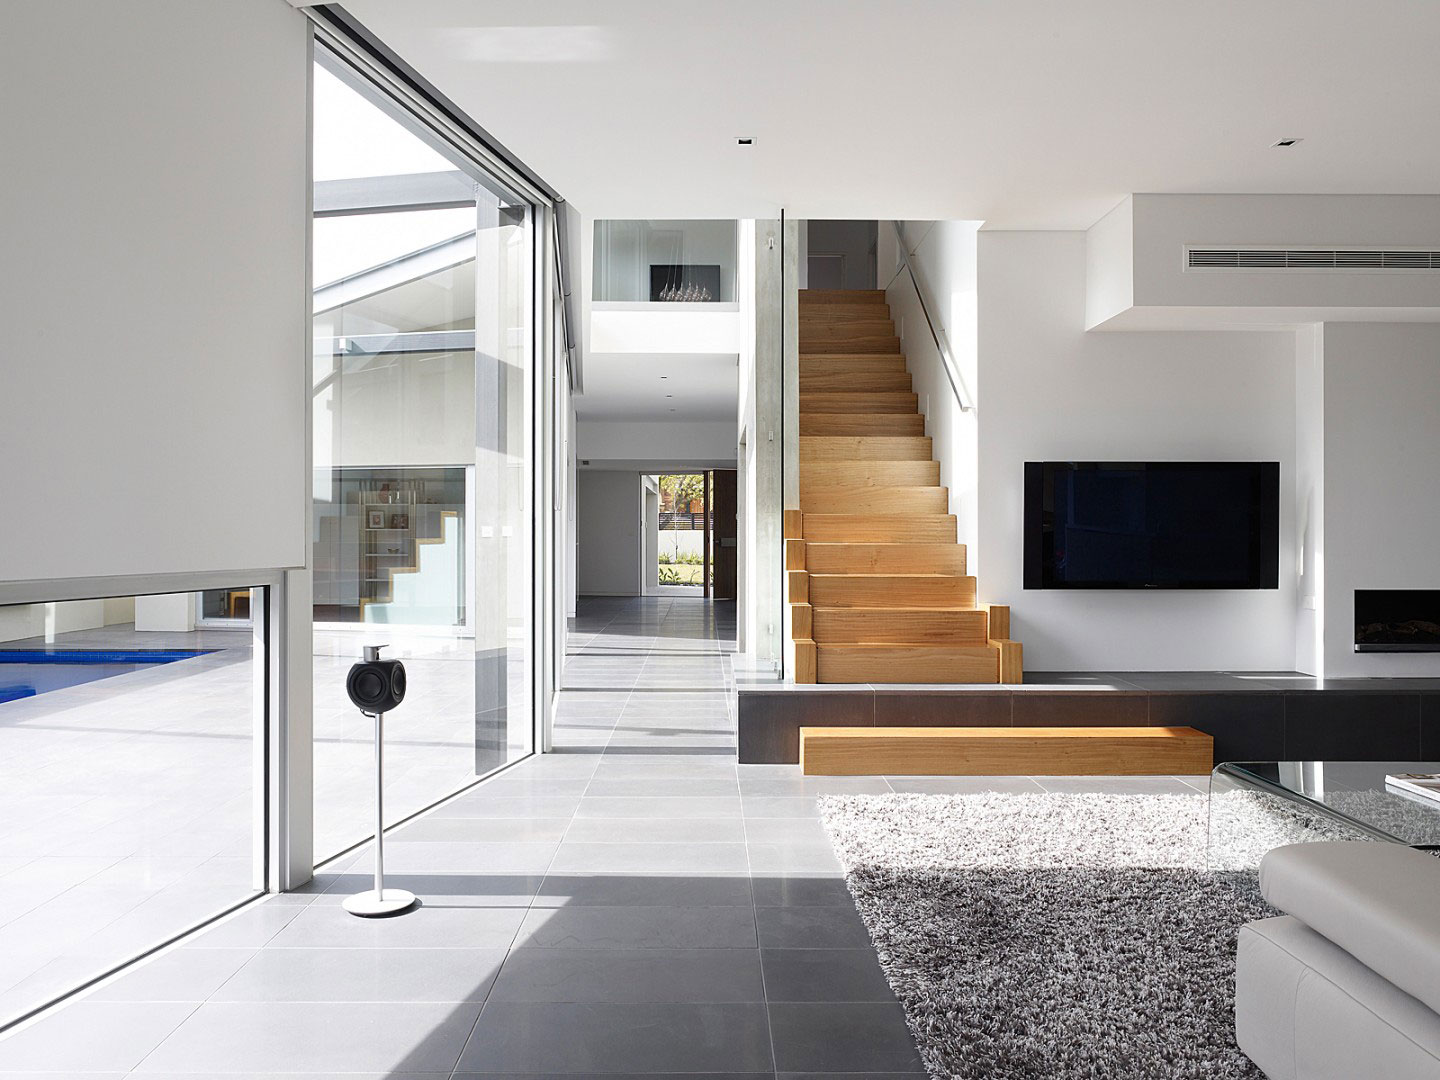 Roberts Street by Steve Domoney Architecture